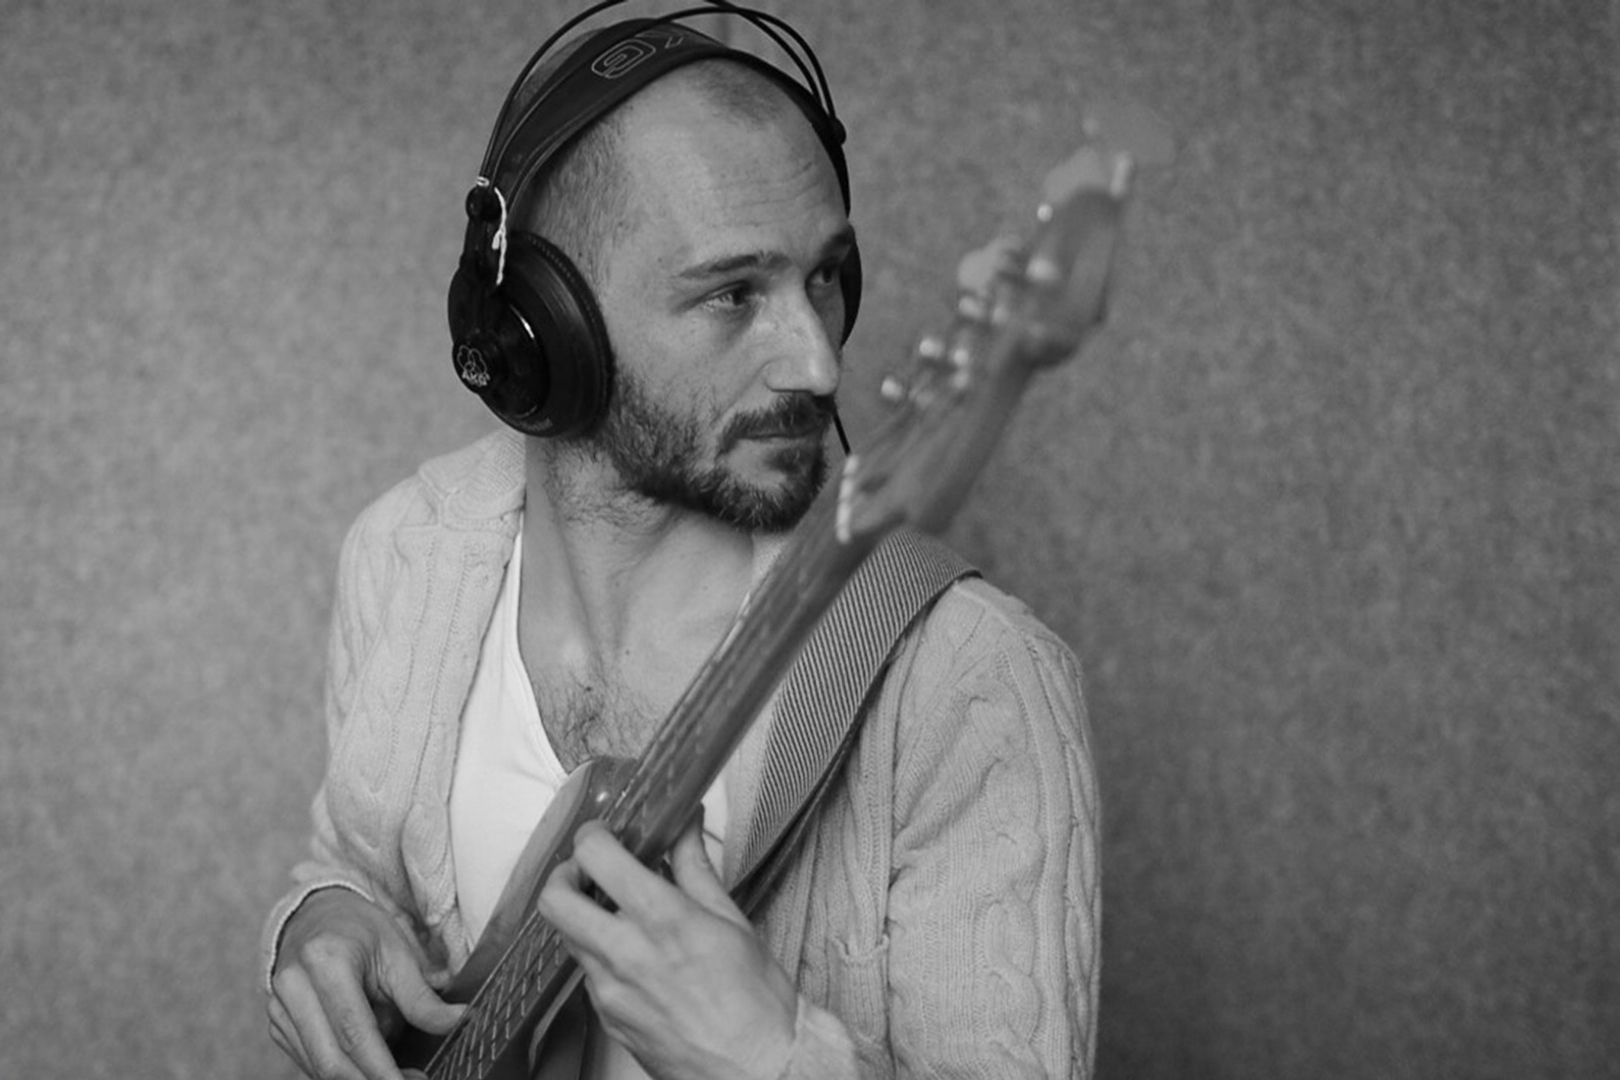 julien tauban_recording bass in studio.JPG